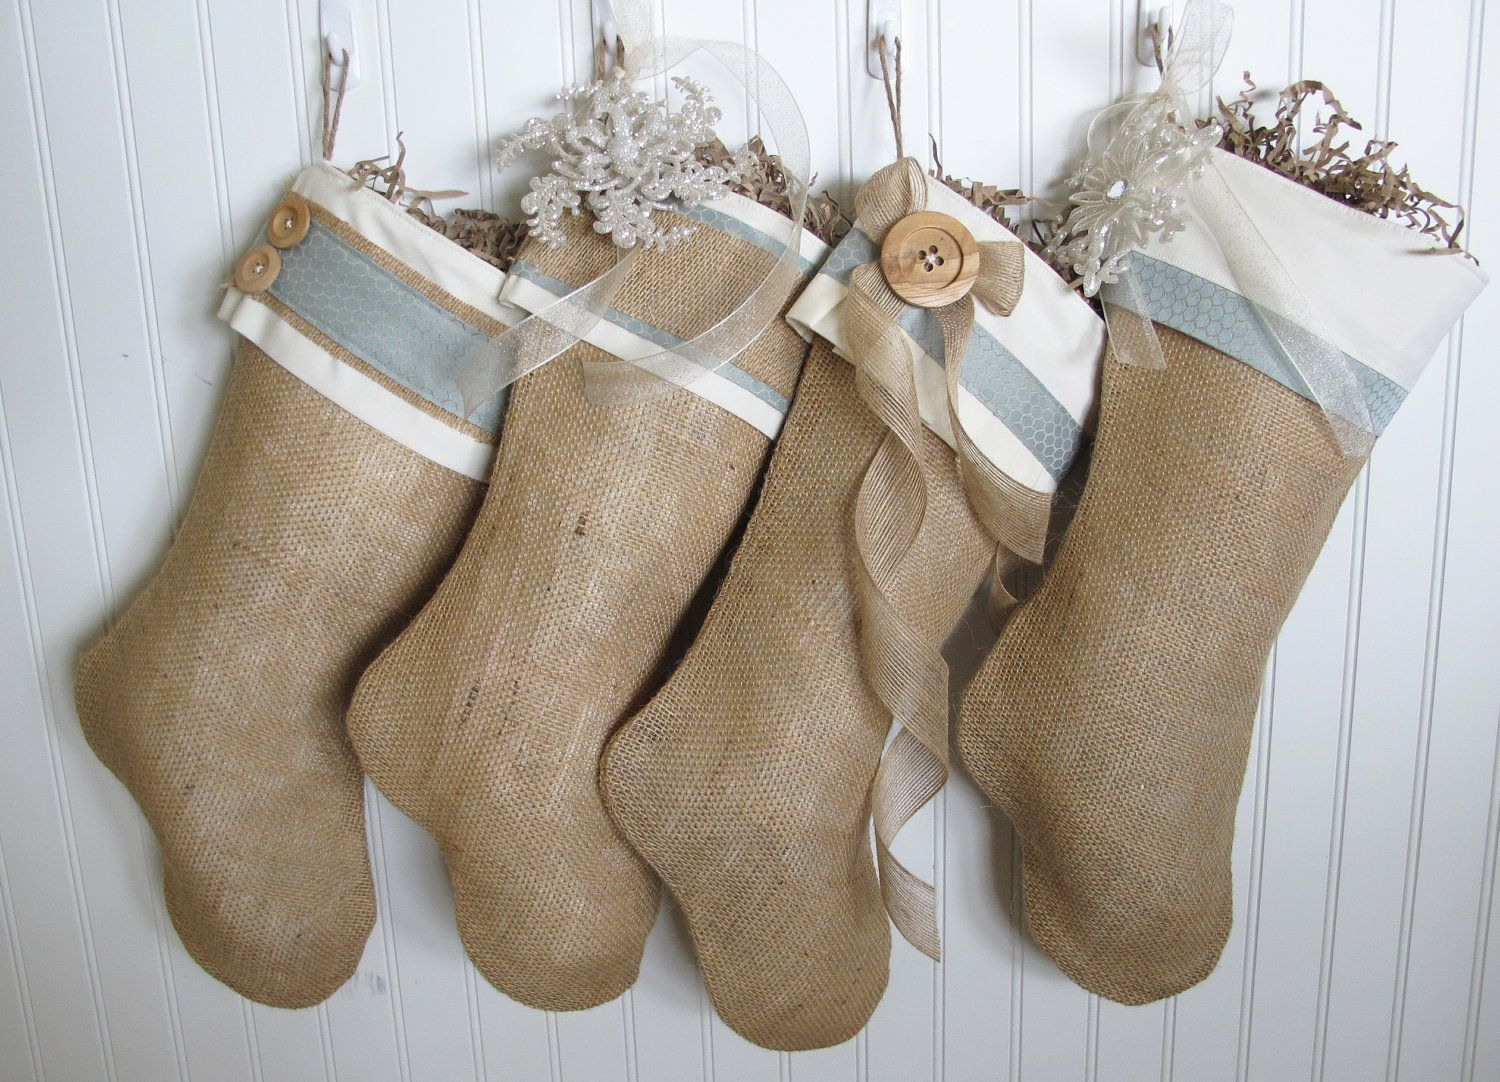 Burlap Christmas Stockings.I Need These Shabby Chic Burlap Christmas Stocking In